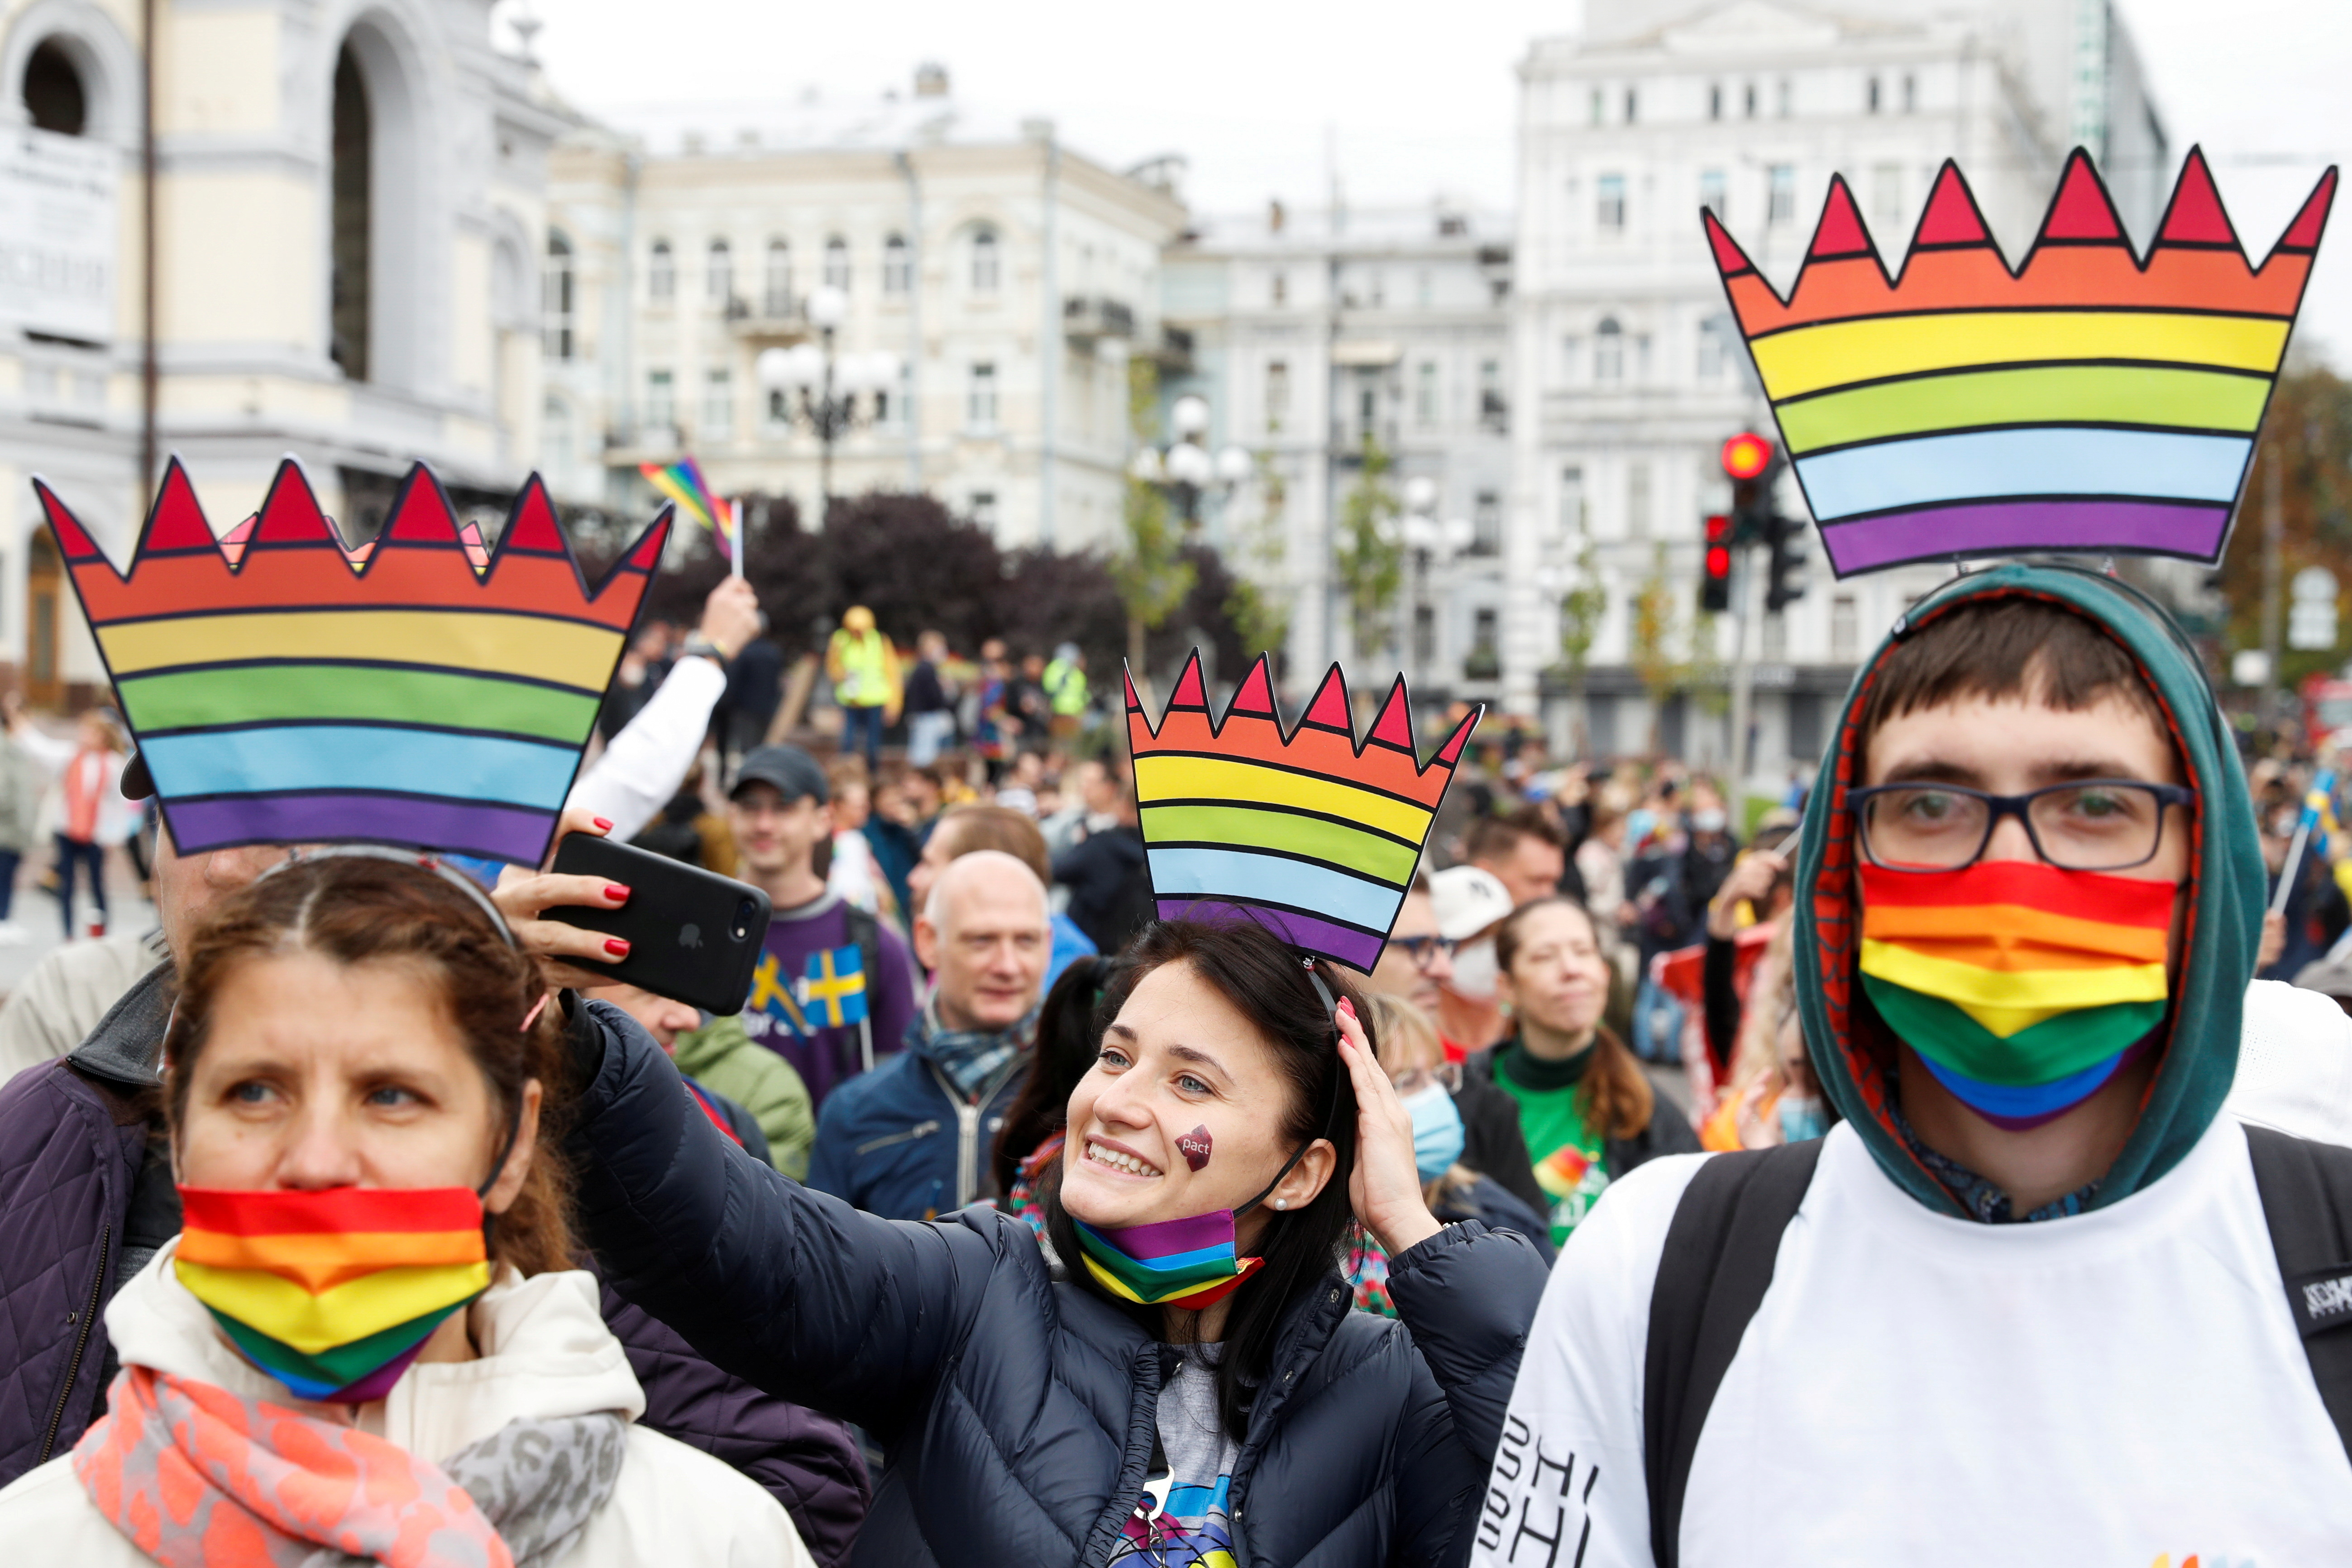 Participants take part in the Equality March, organized by the LGBT+ community in Kyiv, Ukraine September 19, 2021. REUTERS/Valentyn Ogirenko